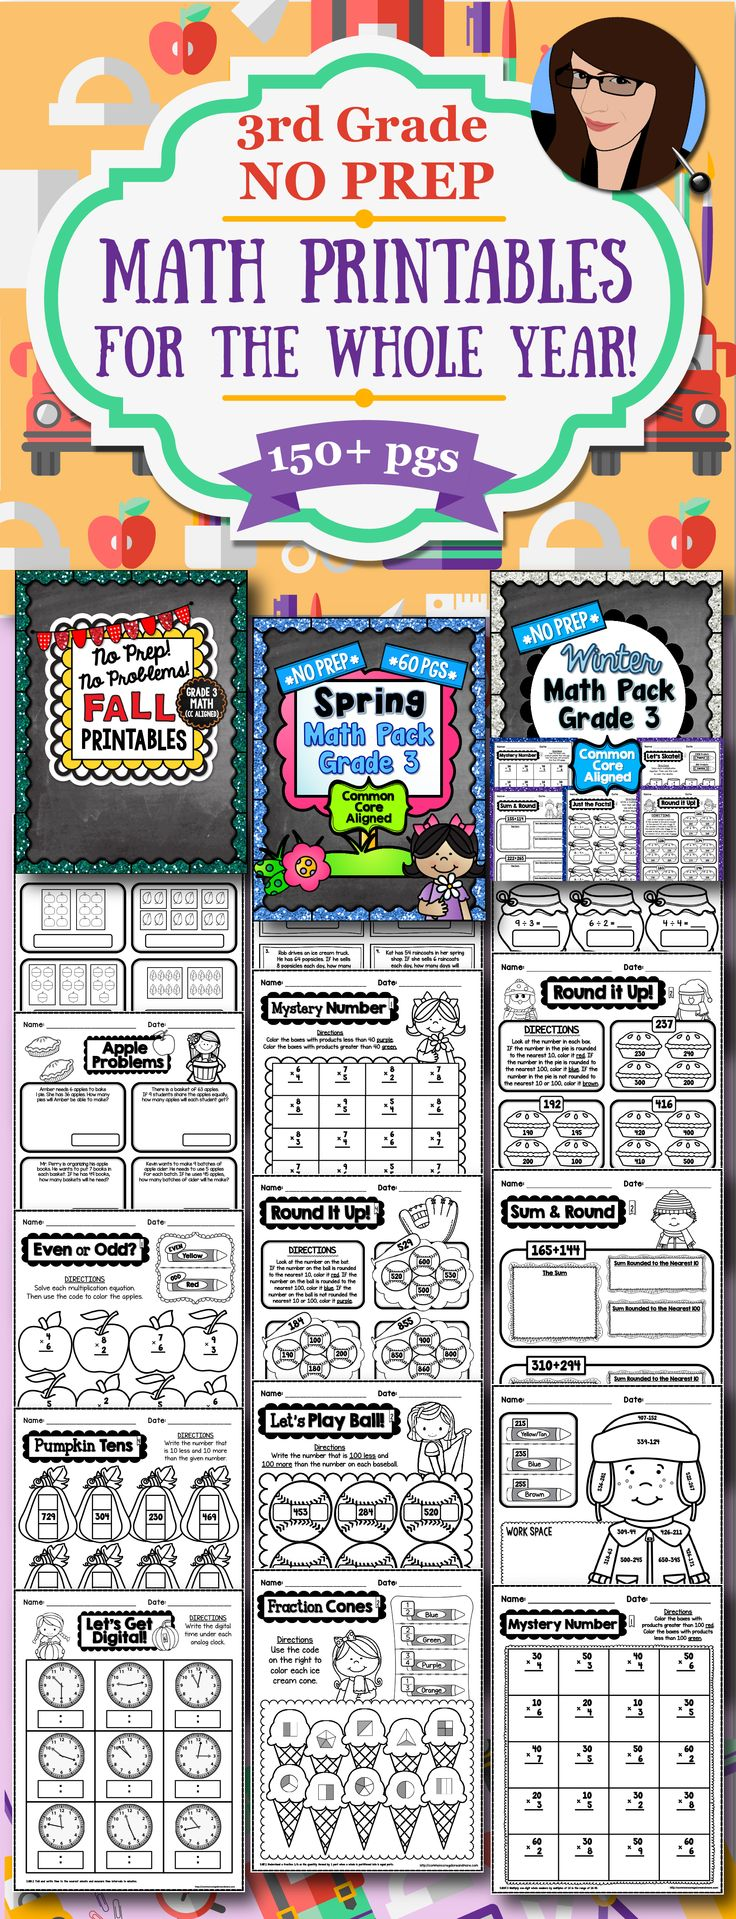 Seasonal No Prep Math Printables for the Whole School Year - 3rd Grade (135+ pages)